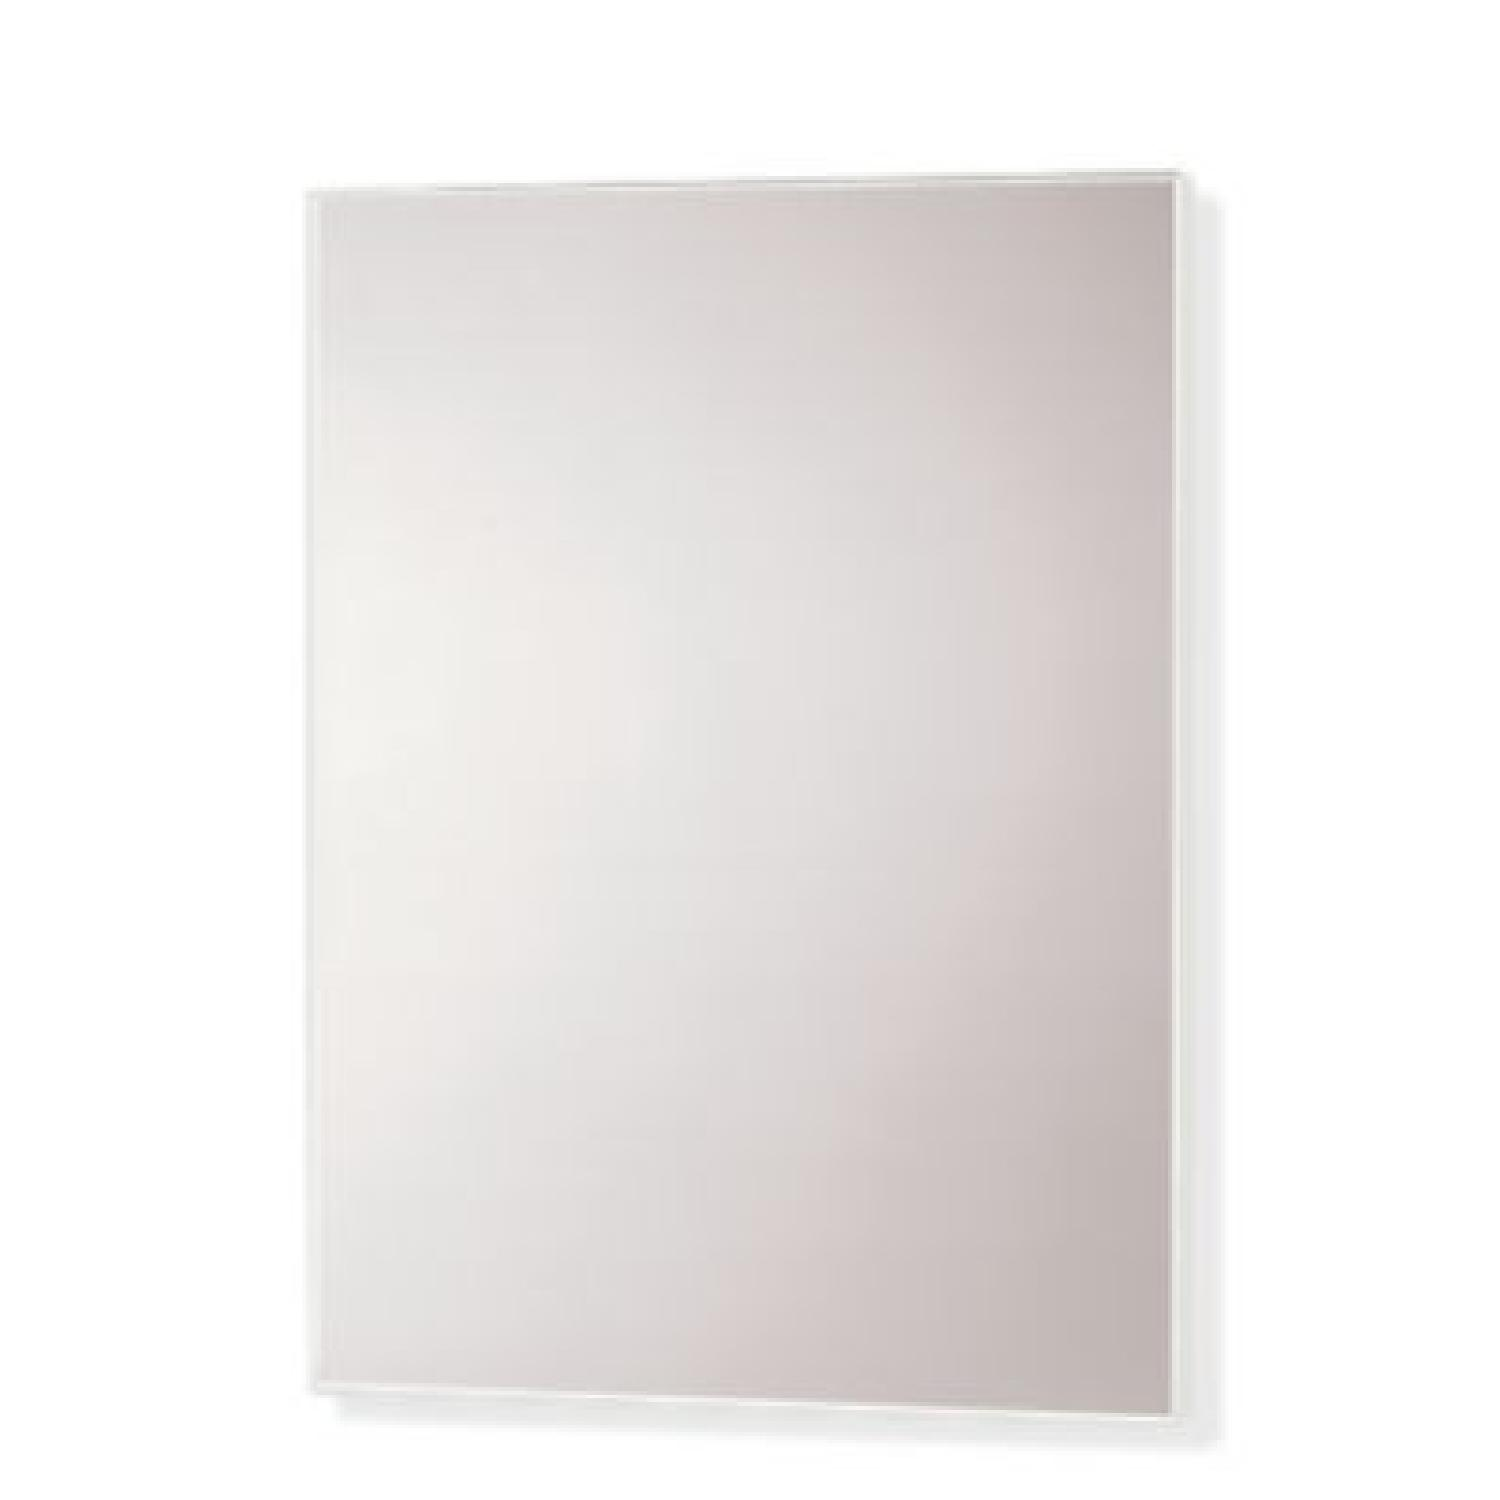 Room & Board Infinity Wall Mirror in White